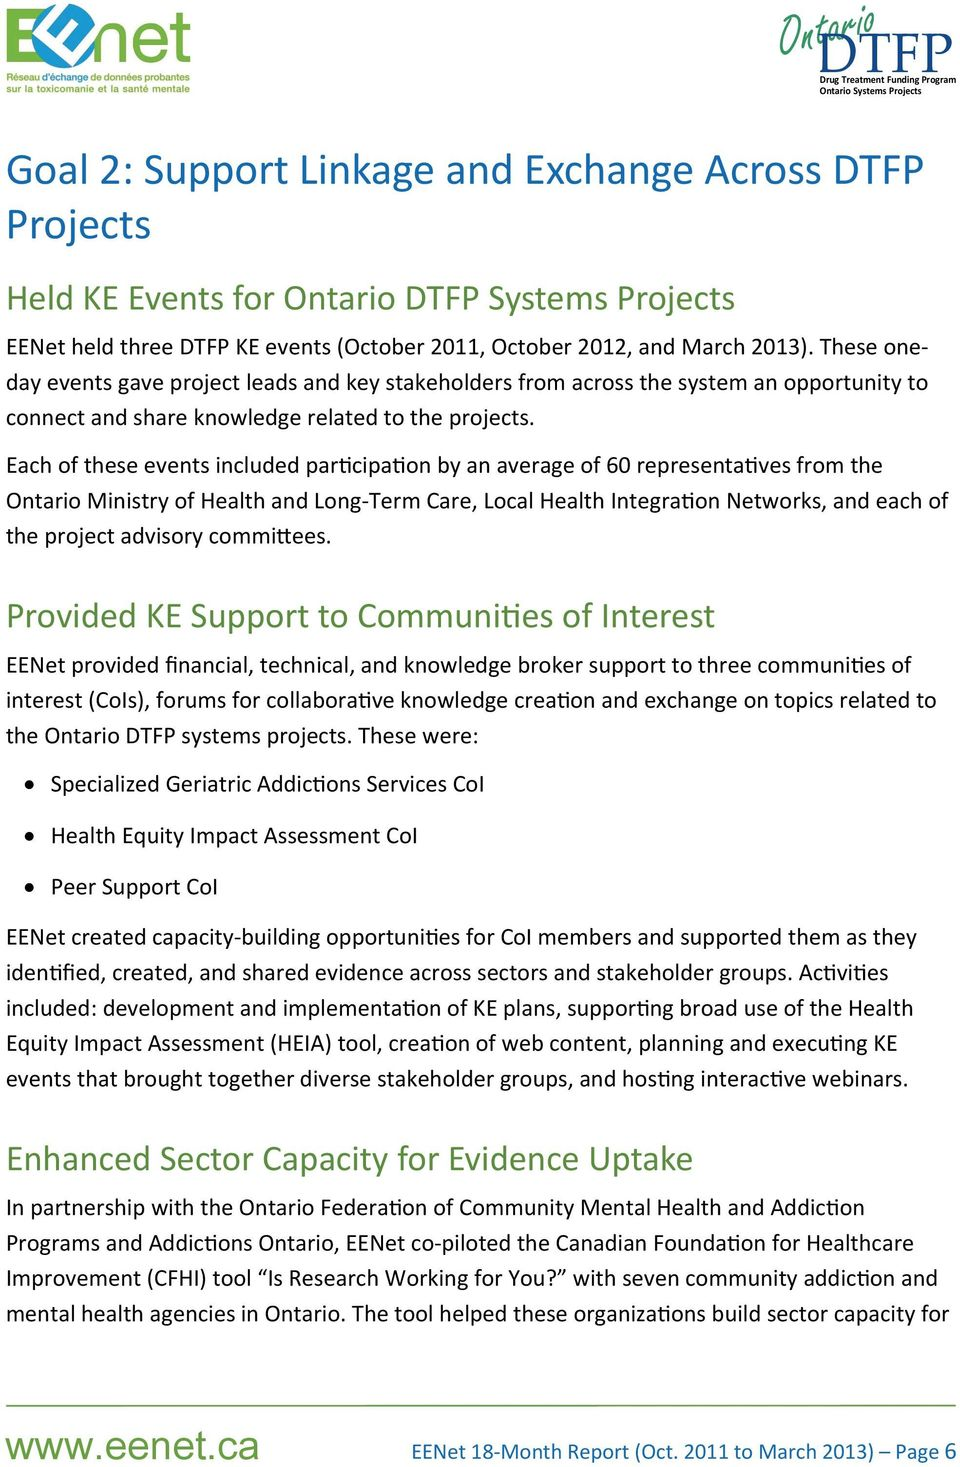 Each of these events included par cipa on by an average of 60 representa ves from the Ontario Ministry of Health and Long Term Care, Local Health Integra on Networks, and each of the project advisory